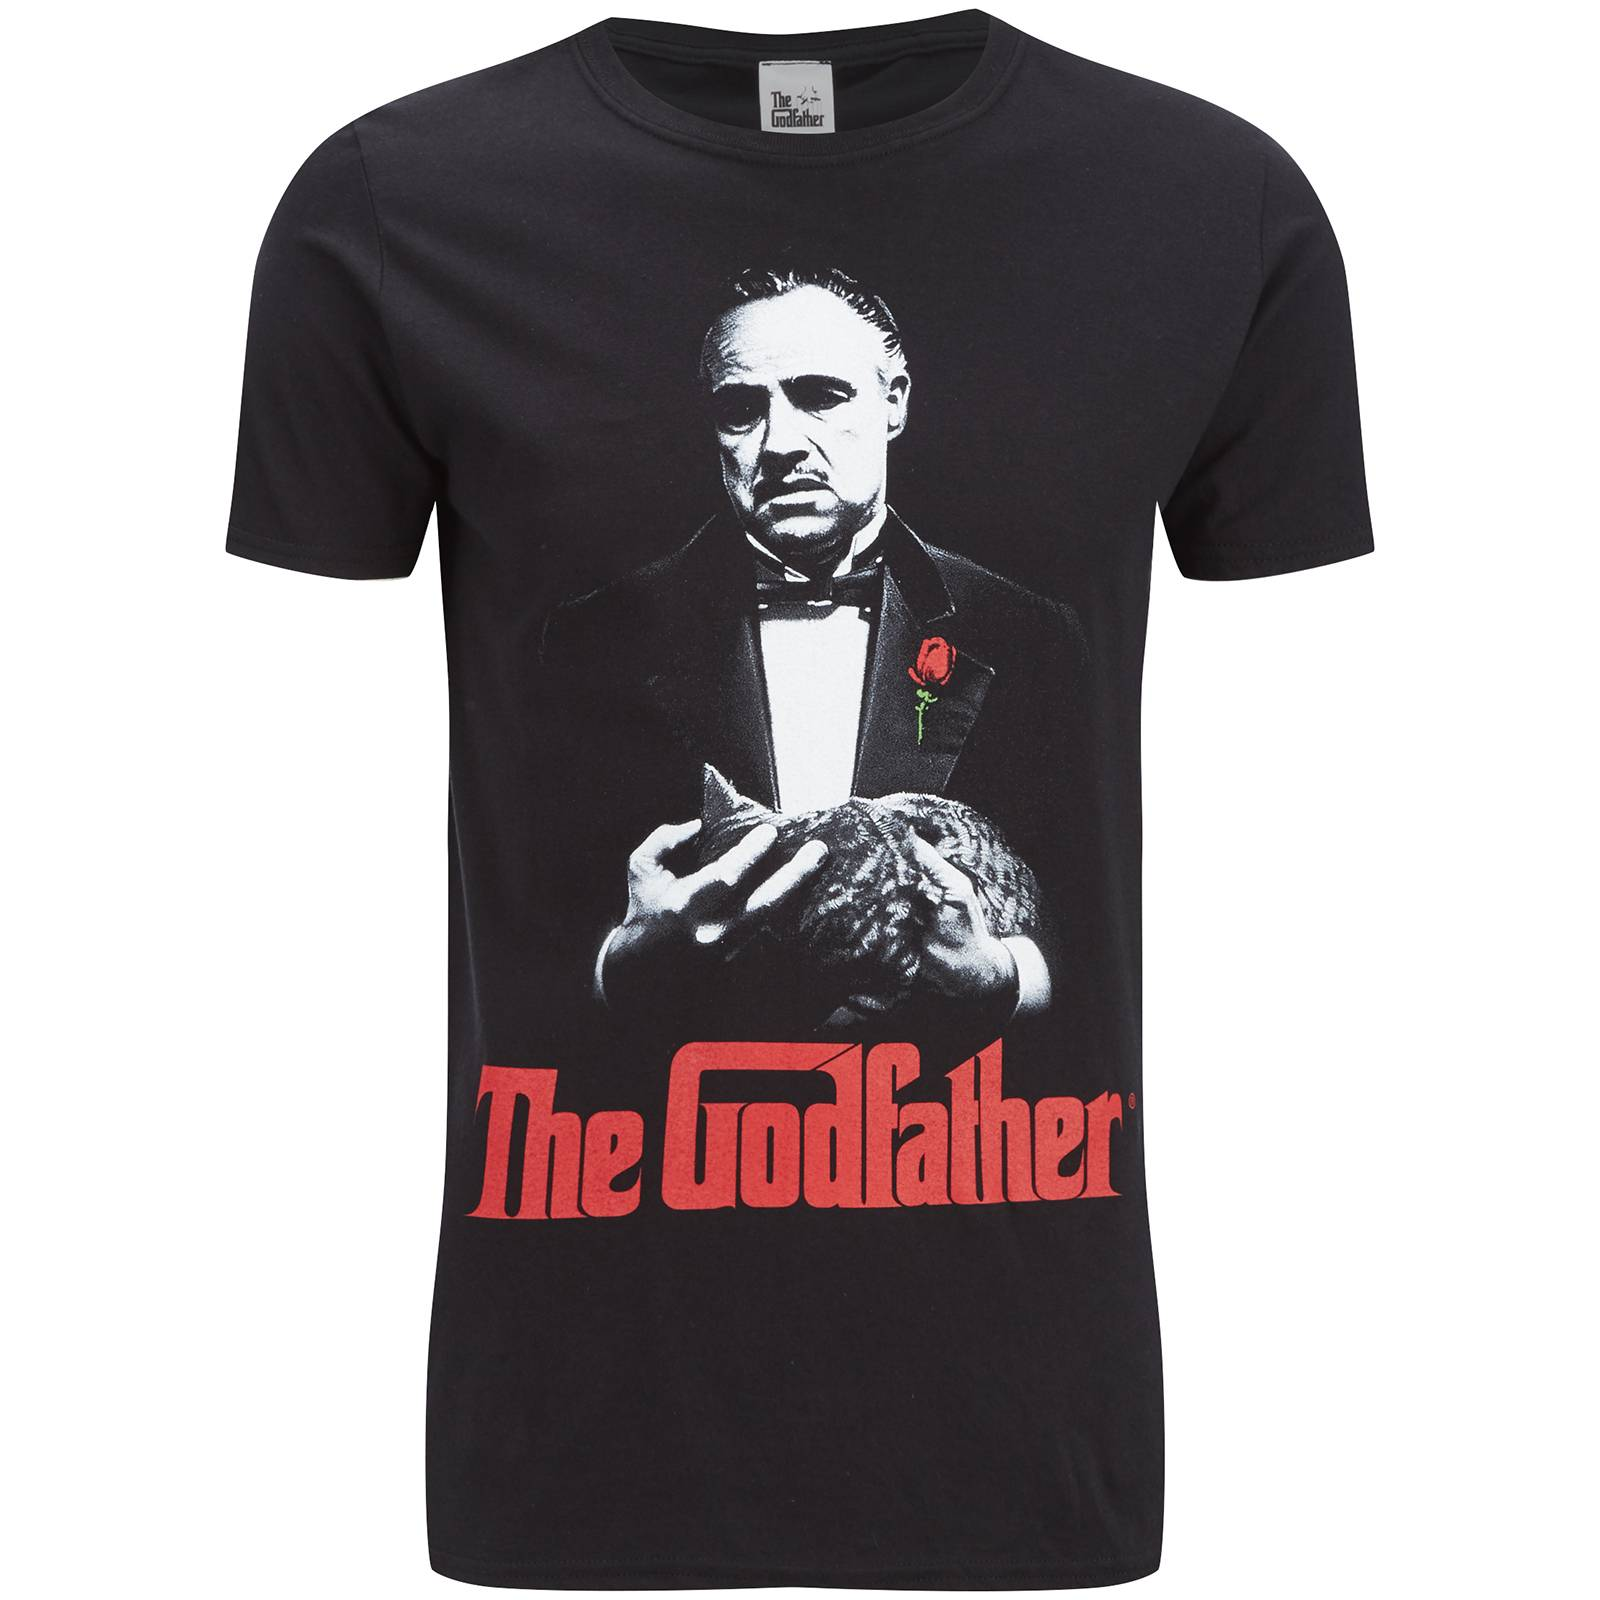 Geek Clothing The Godfather Men's The Godfather T-Shirt - Black - S - Black